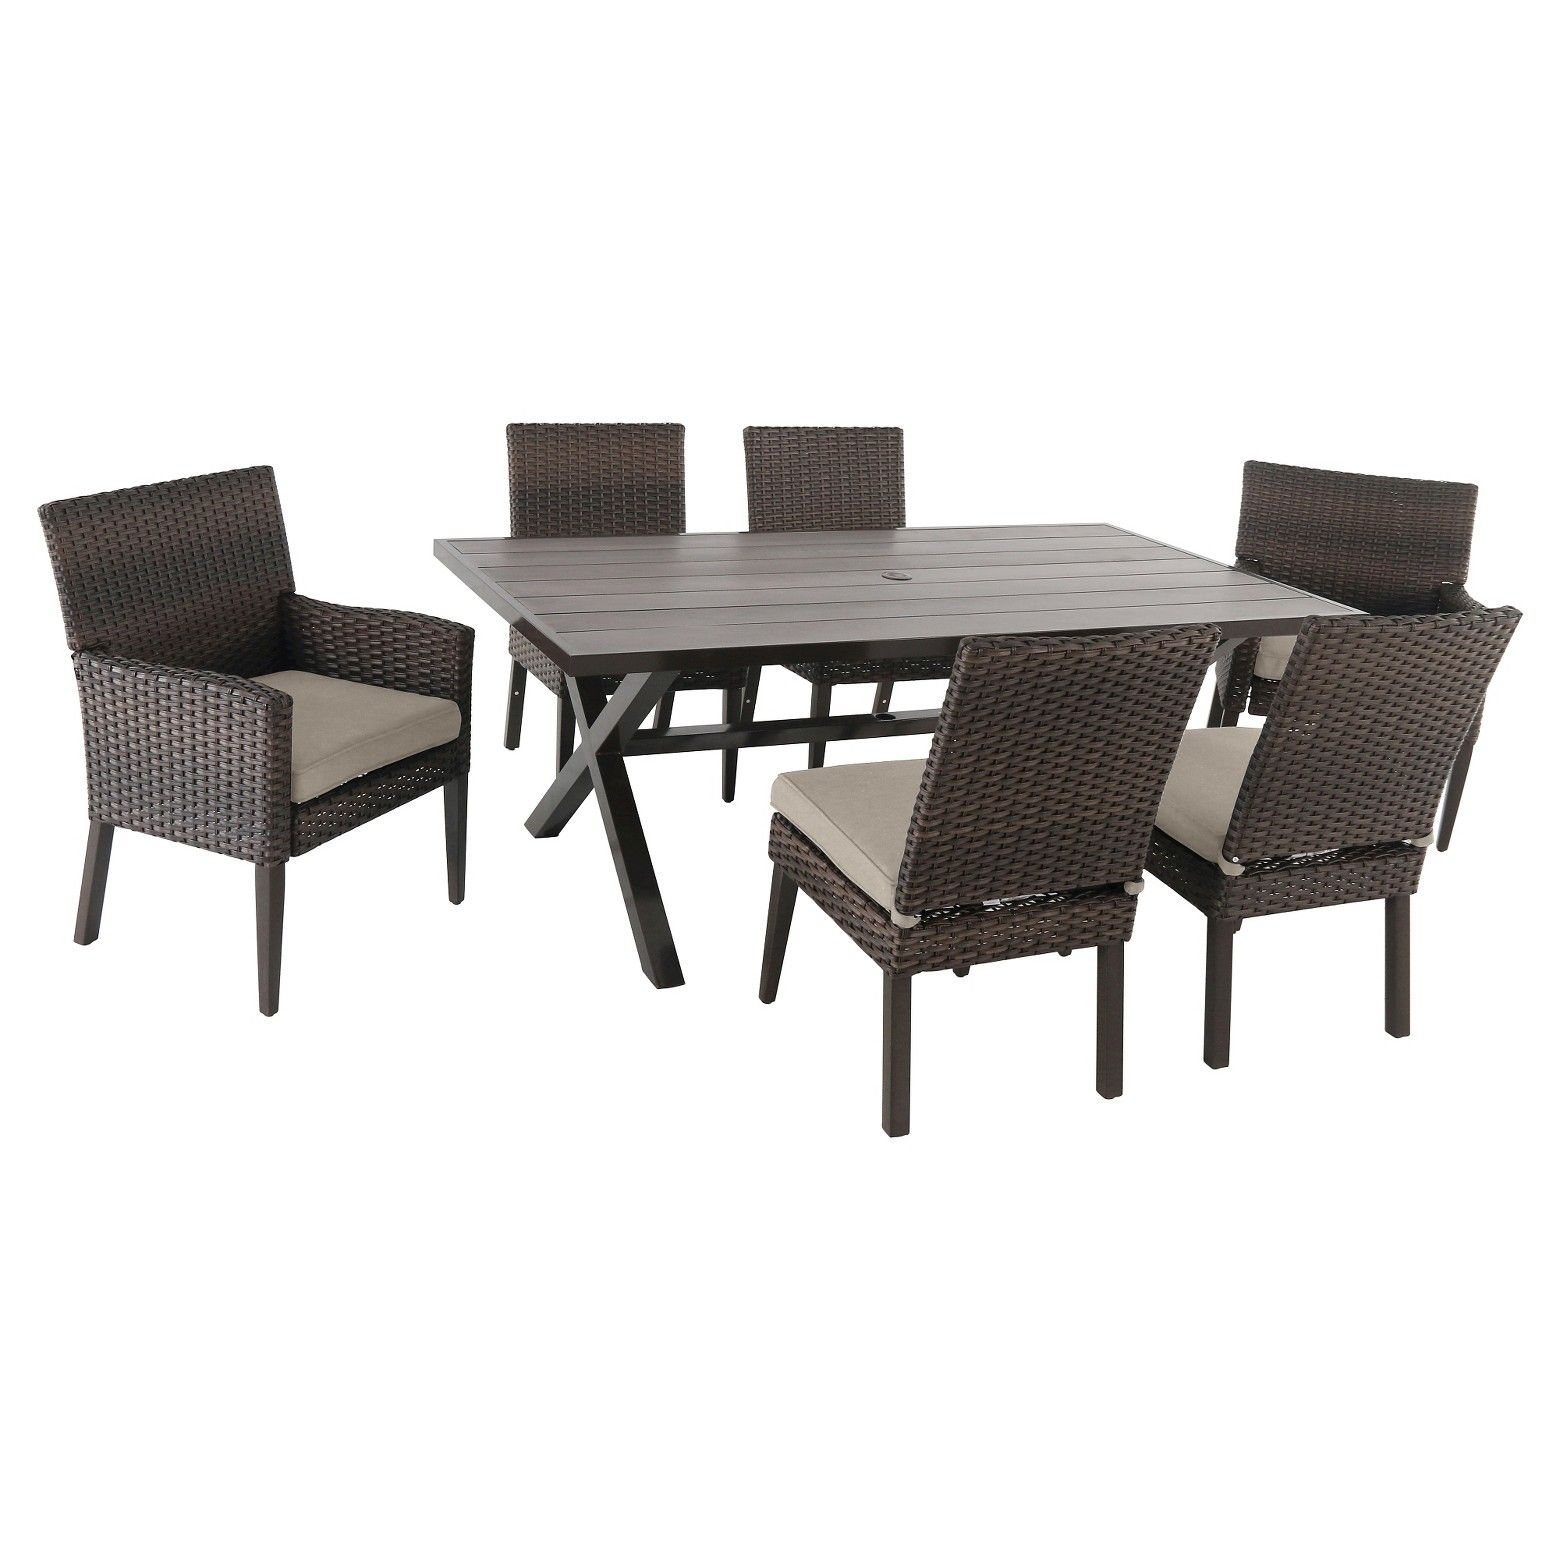 Made of wicker rust and weather resistantentertain family outdoors with the halsted wicker patio dining set from threshold this outdoor